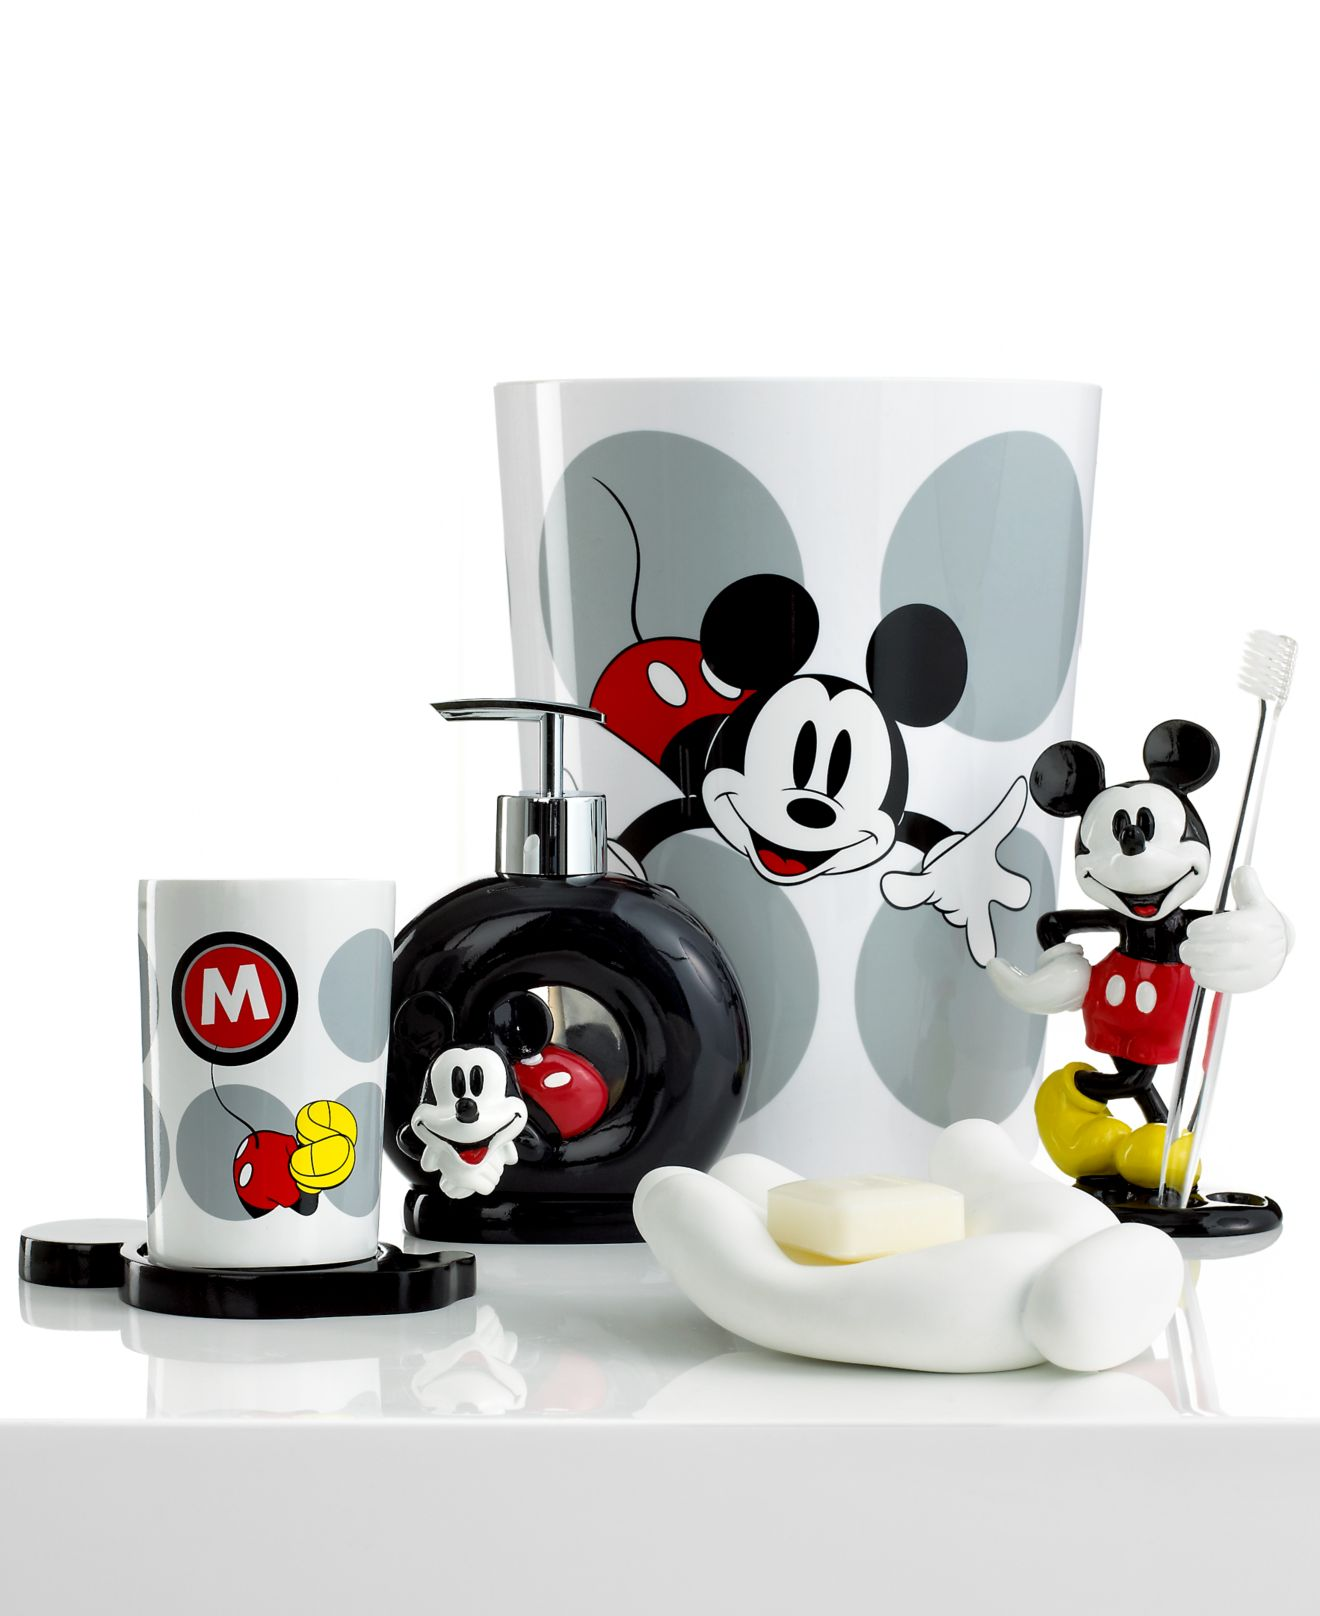 Uncategorized Disney Kitchen Appliances 30 mickey mouse kitchen appliances new style appliances